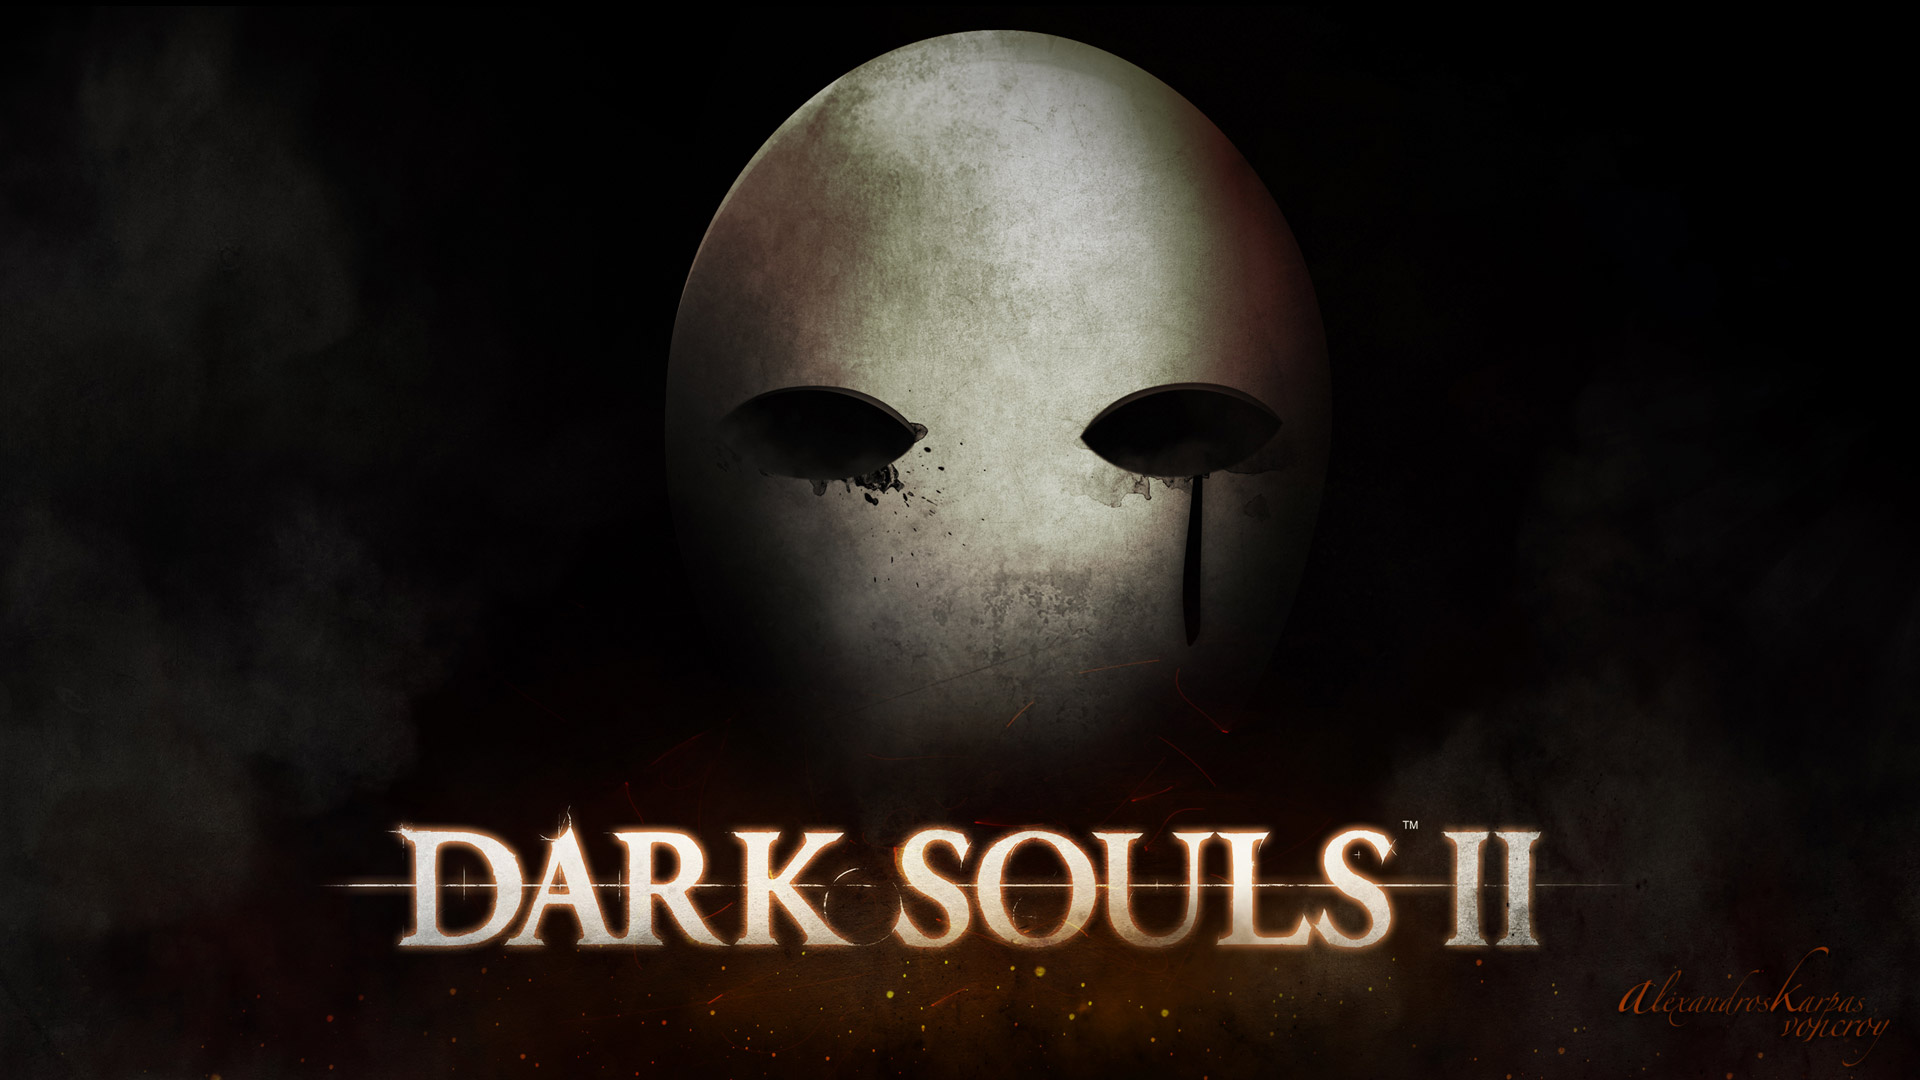 Dark Souls 2 wallpaper 9